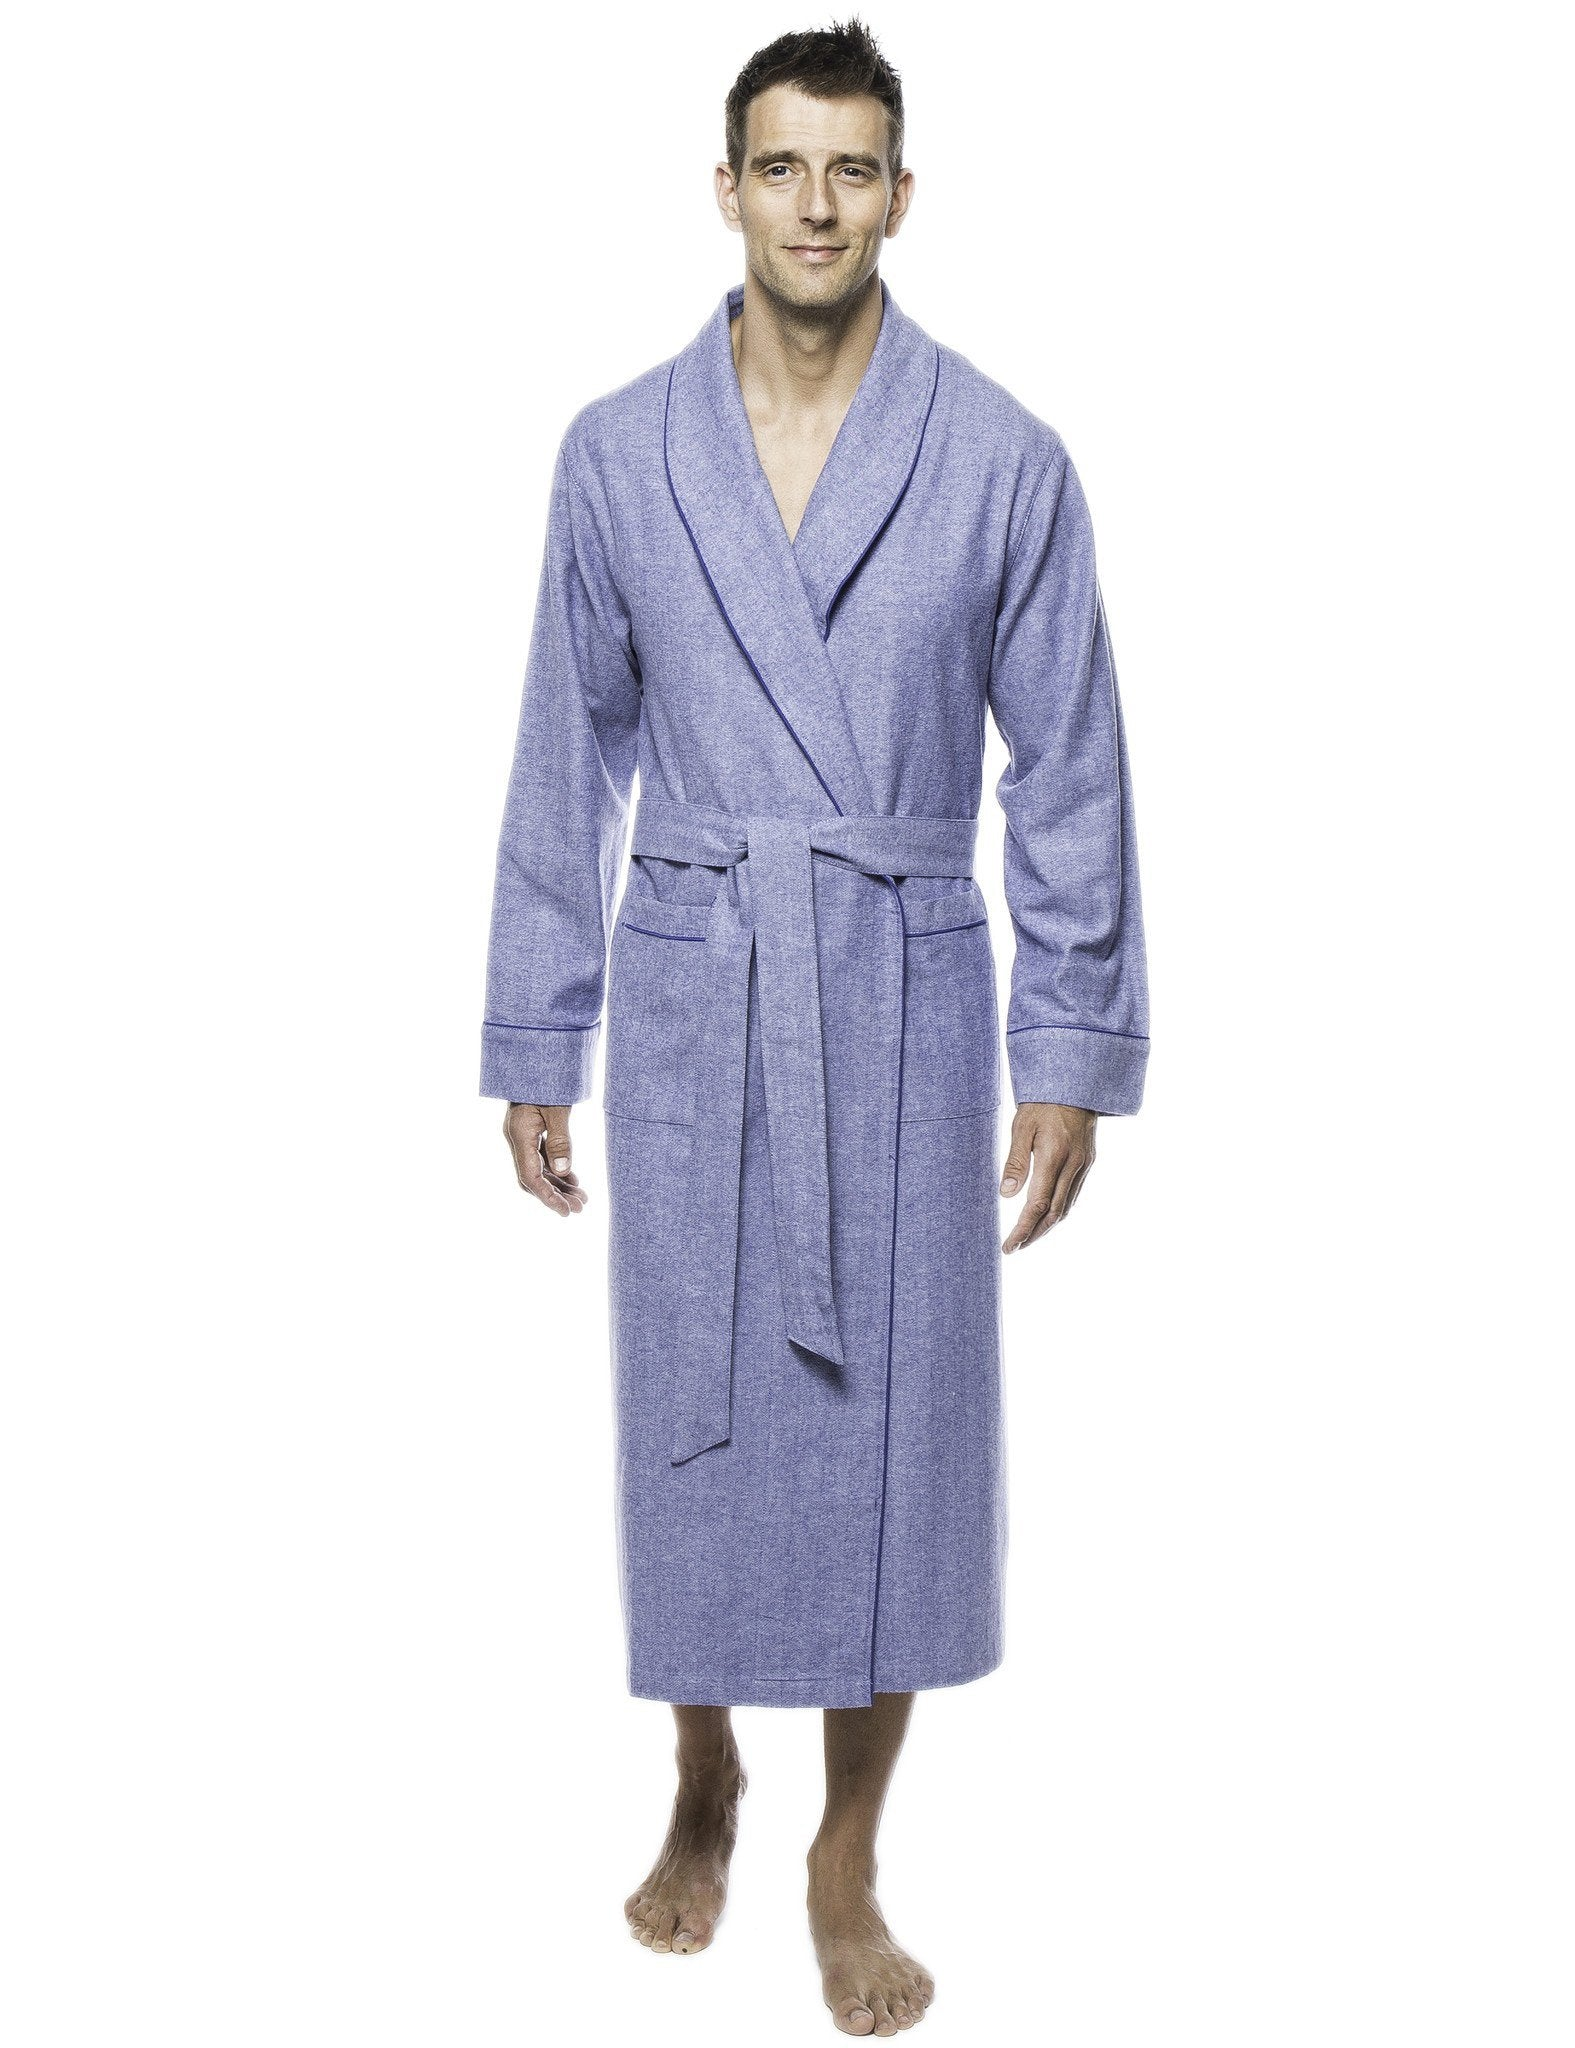 Mens Premium 100% Cotton Flannel Robe - Herringbone Blue